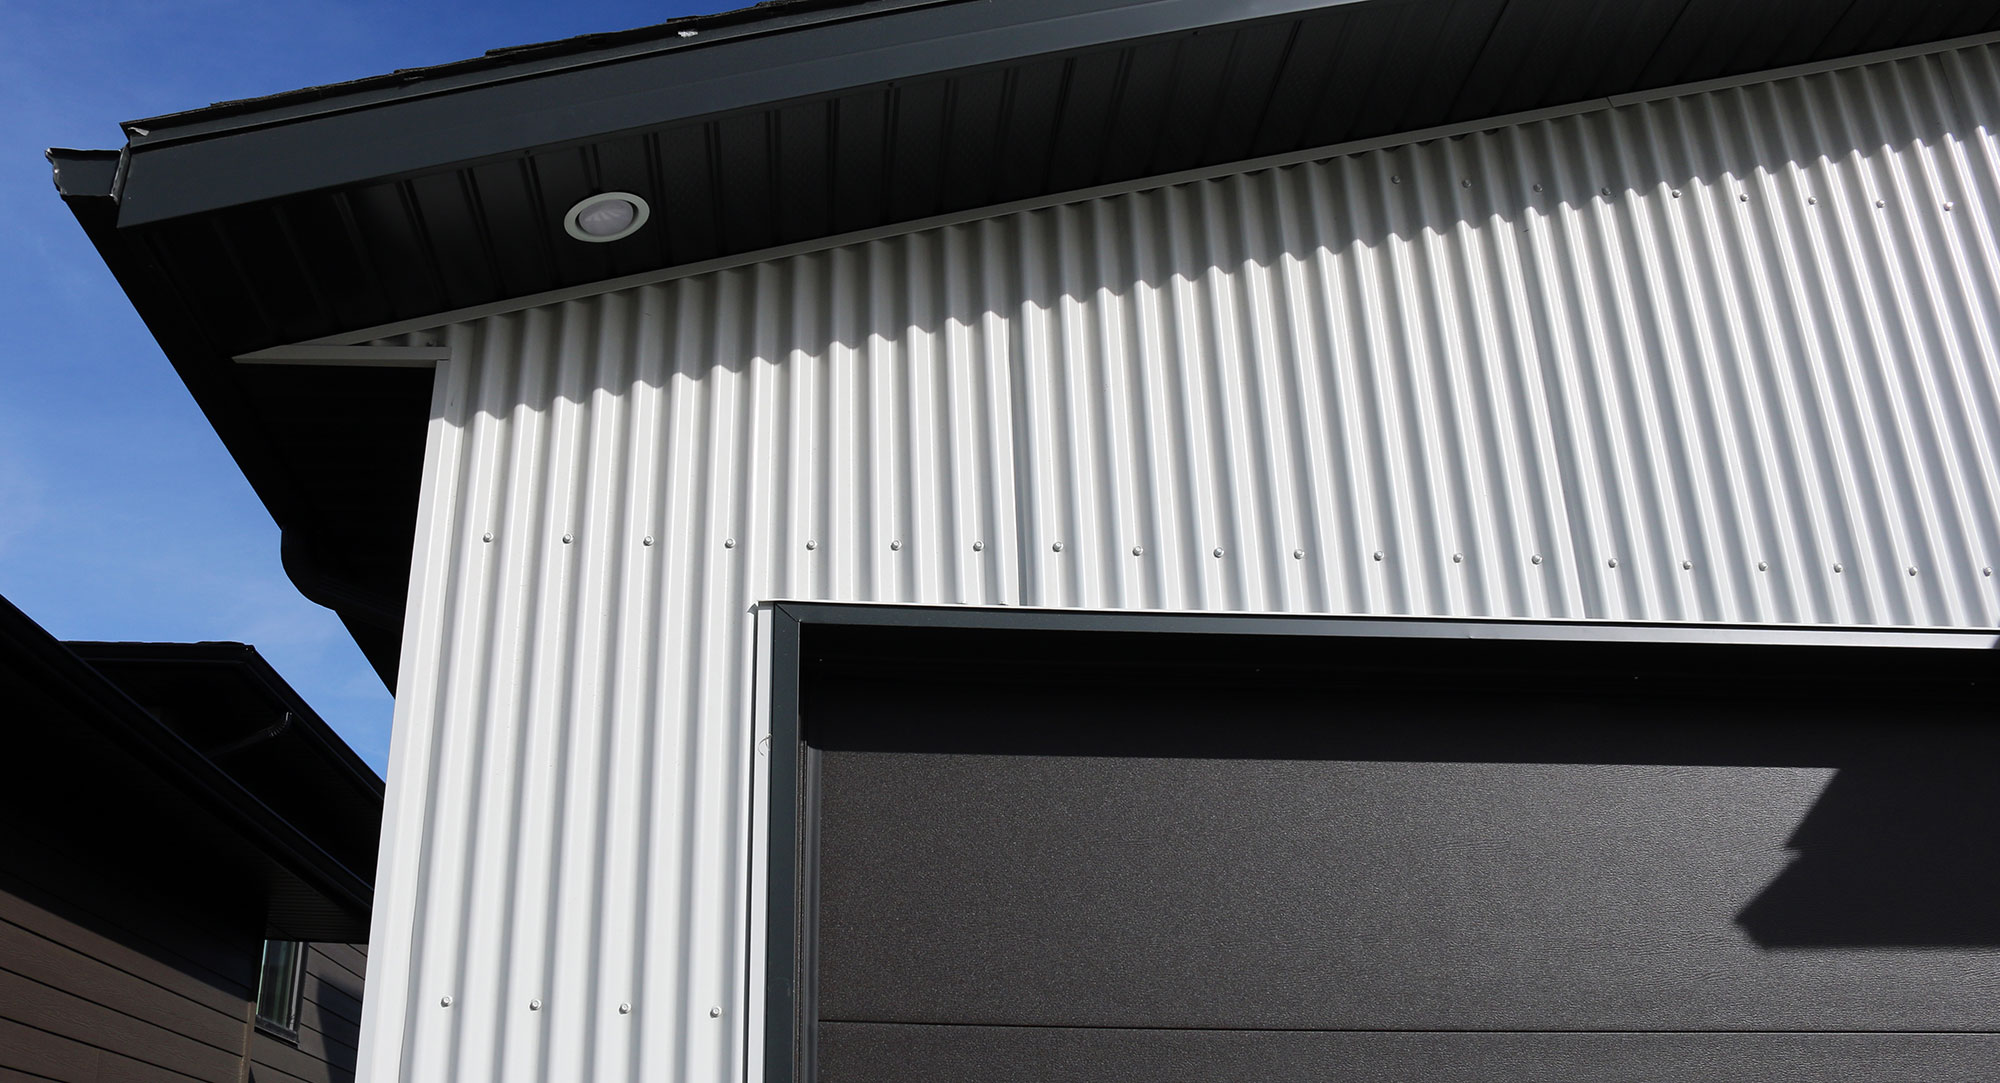 7/8 Corrugated Metal Siding in Bright White by Forma Steel